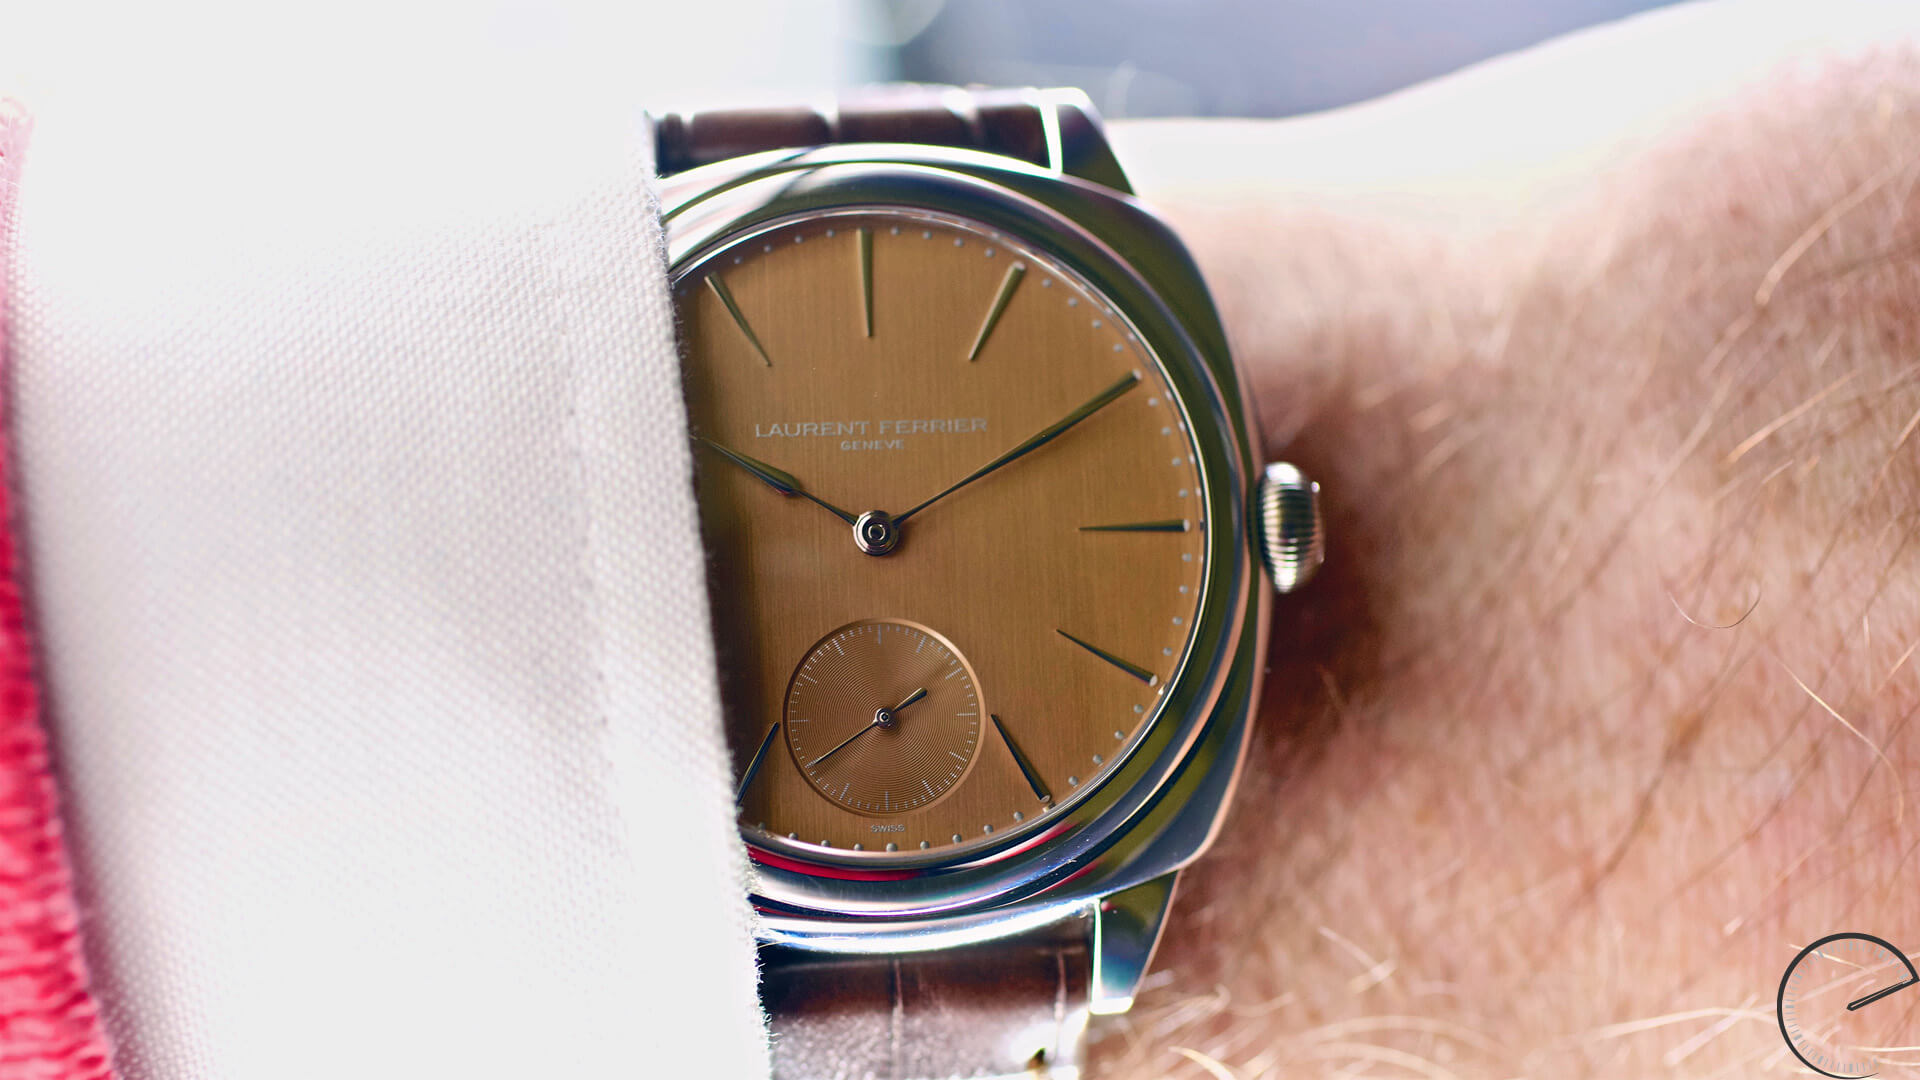 Laurent Ferrier Galet Square - ESCAPEMENT magazine by Angus Davies